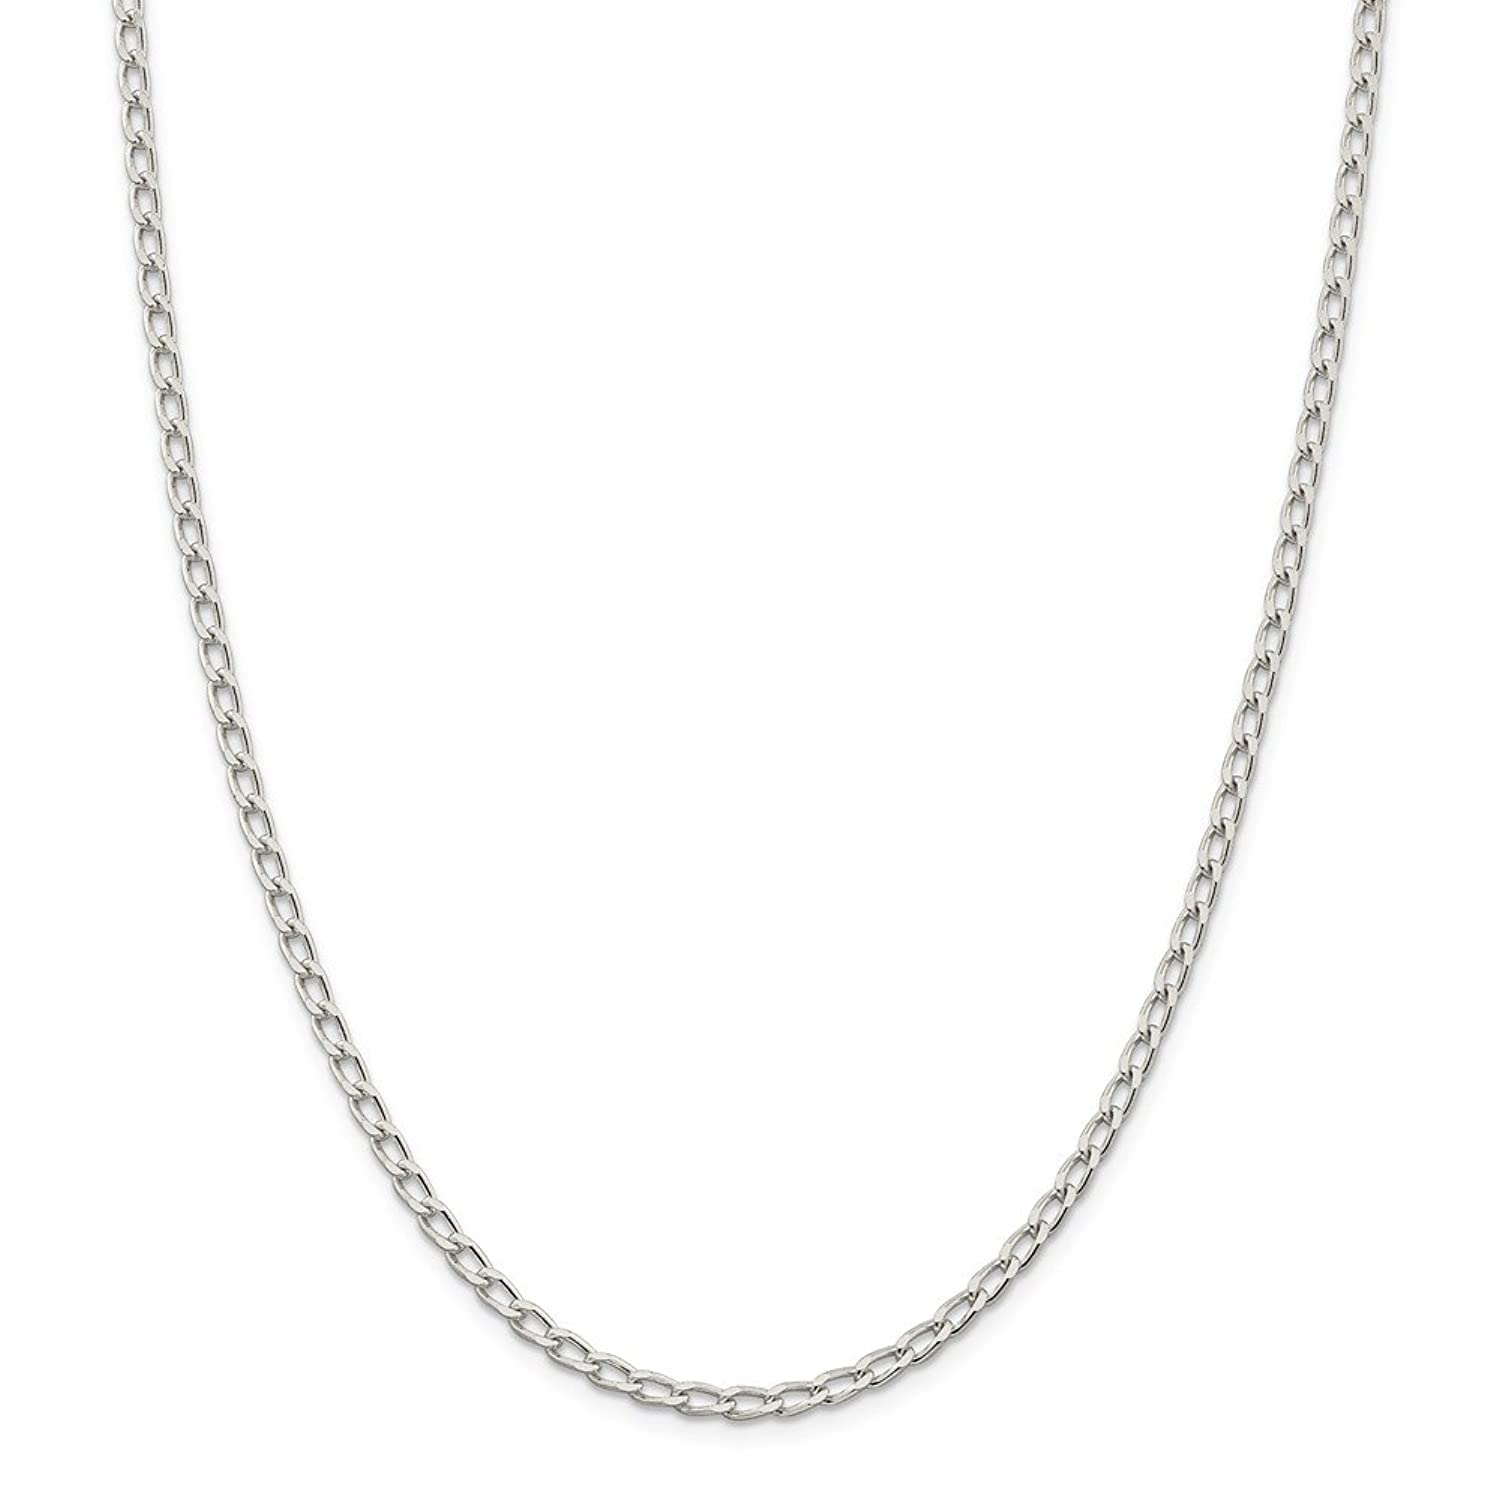 Sonia Jewels Sterling Silver 3.2mm Open Link Chain - with Secure Lobster Lock Clasp